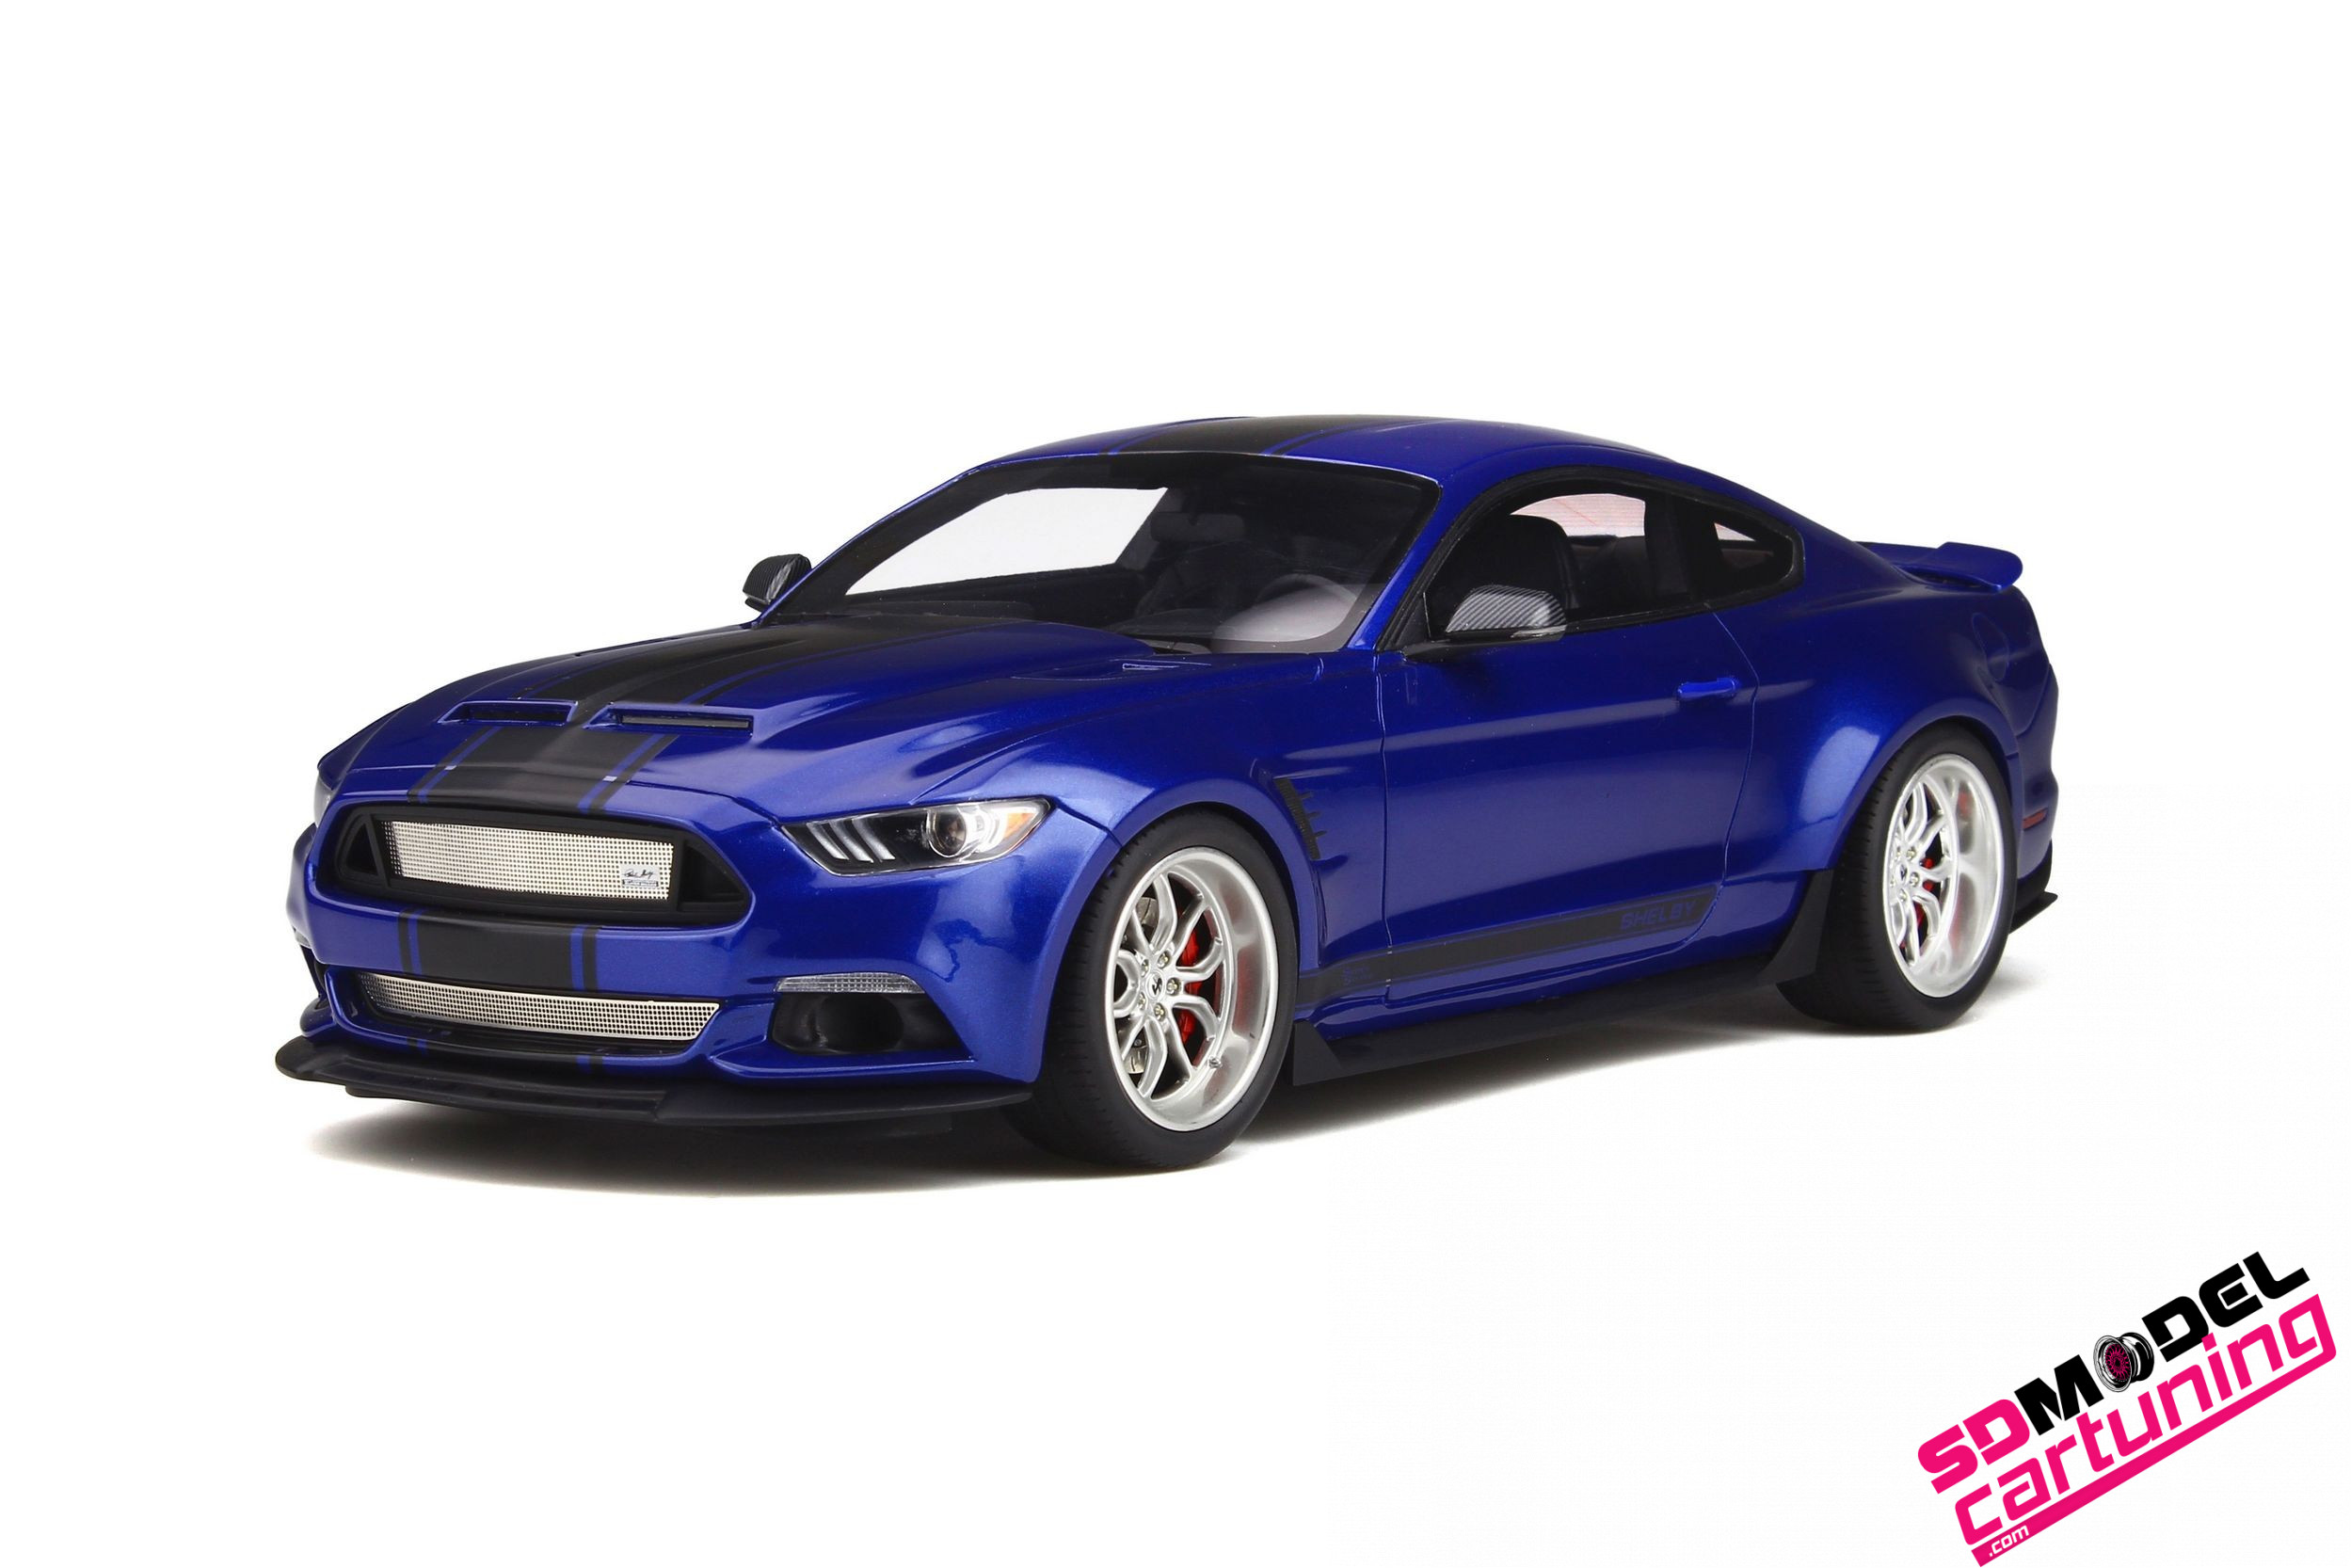 1:18 Ford Mustang Shelby GT350 Widebody